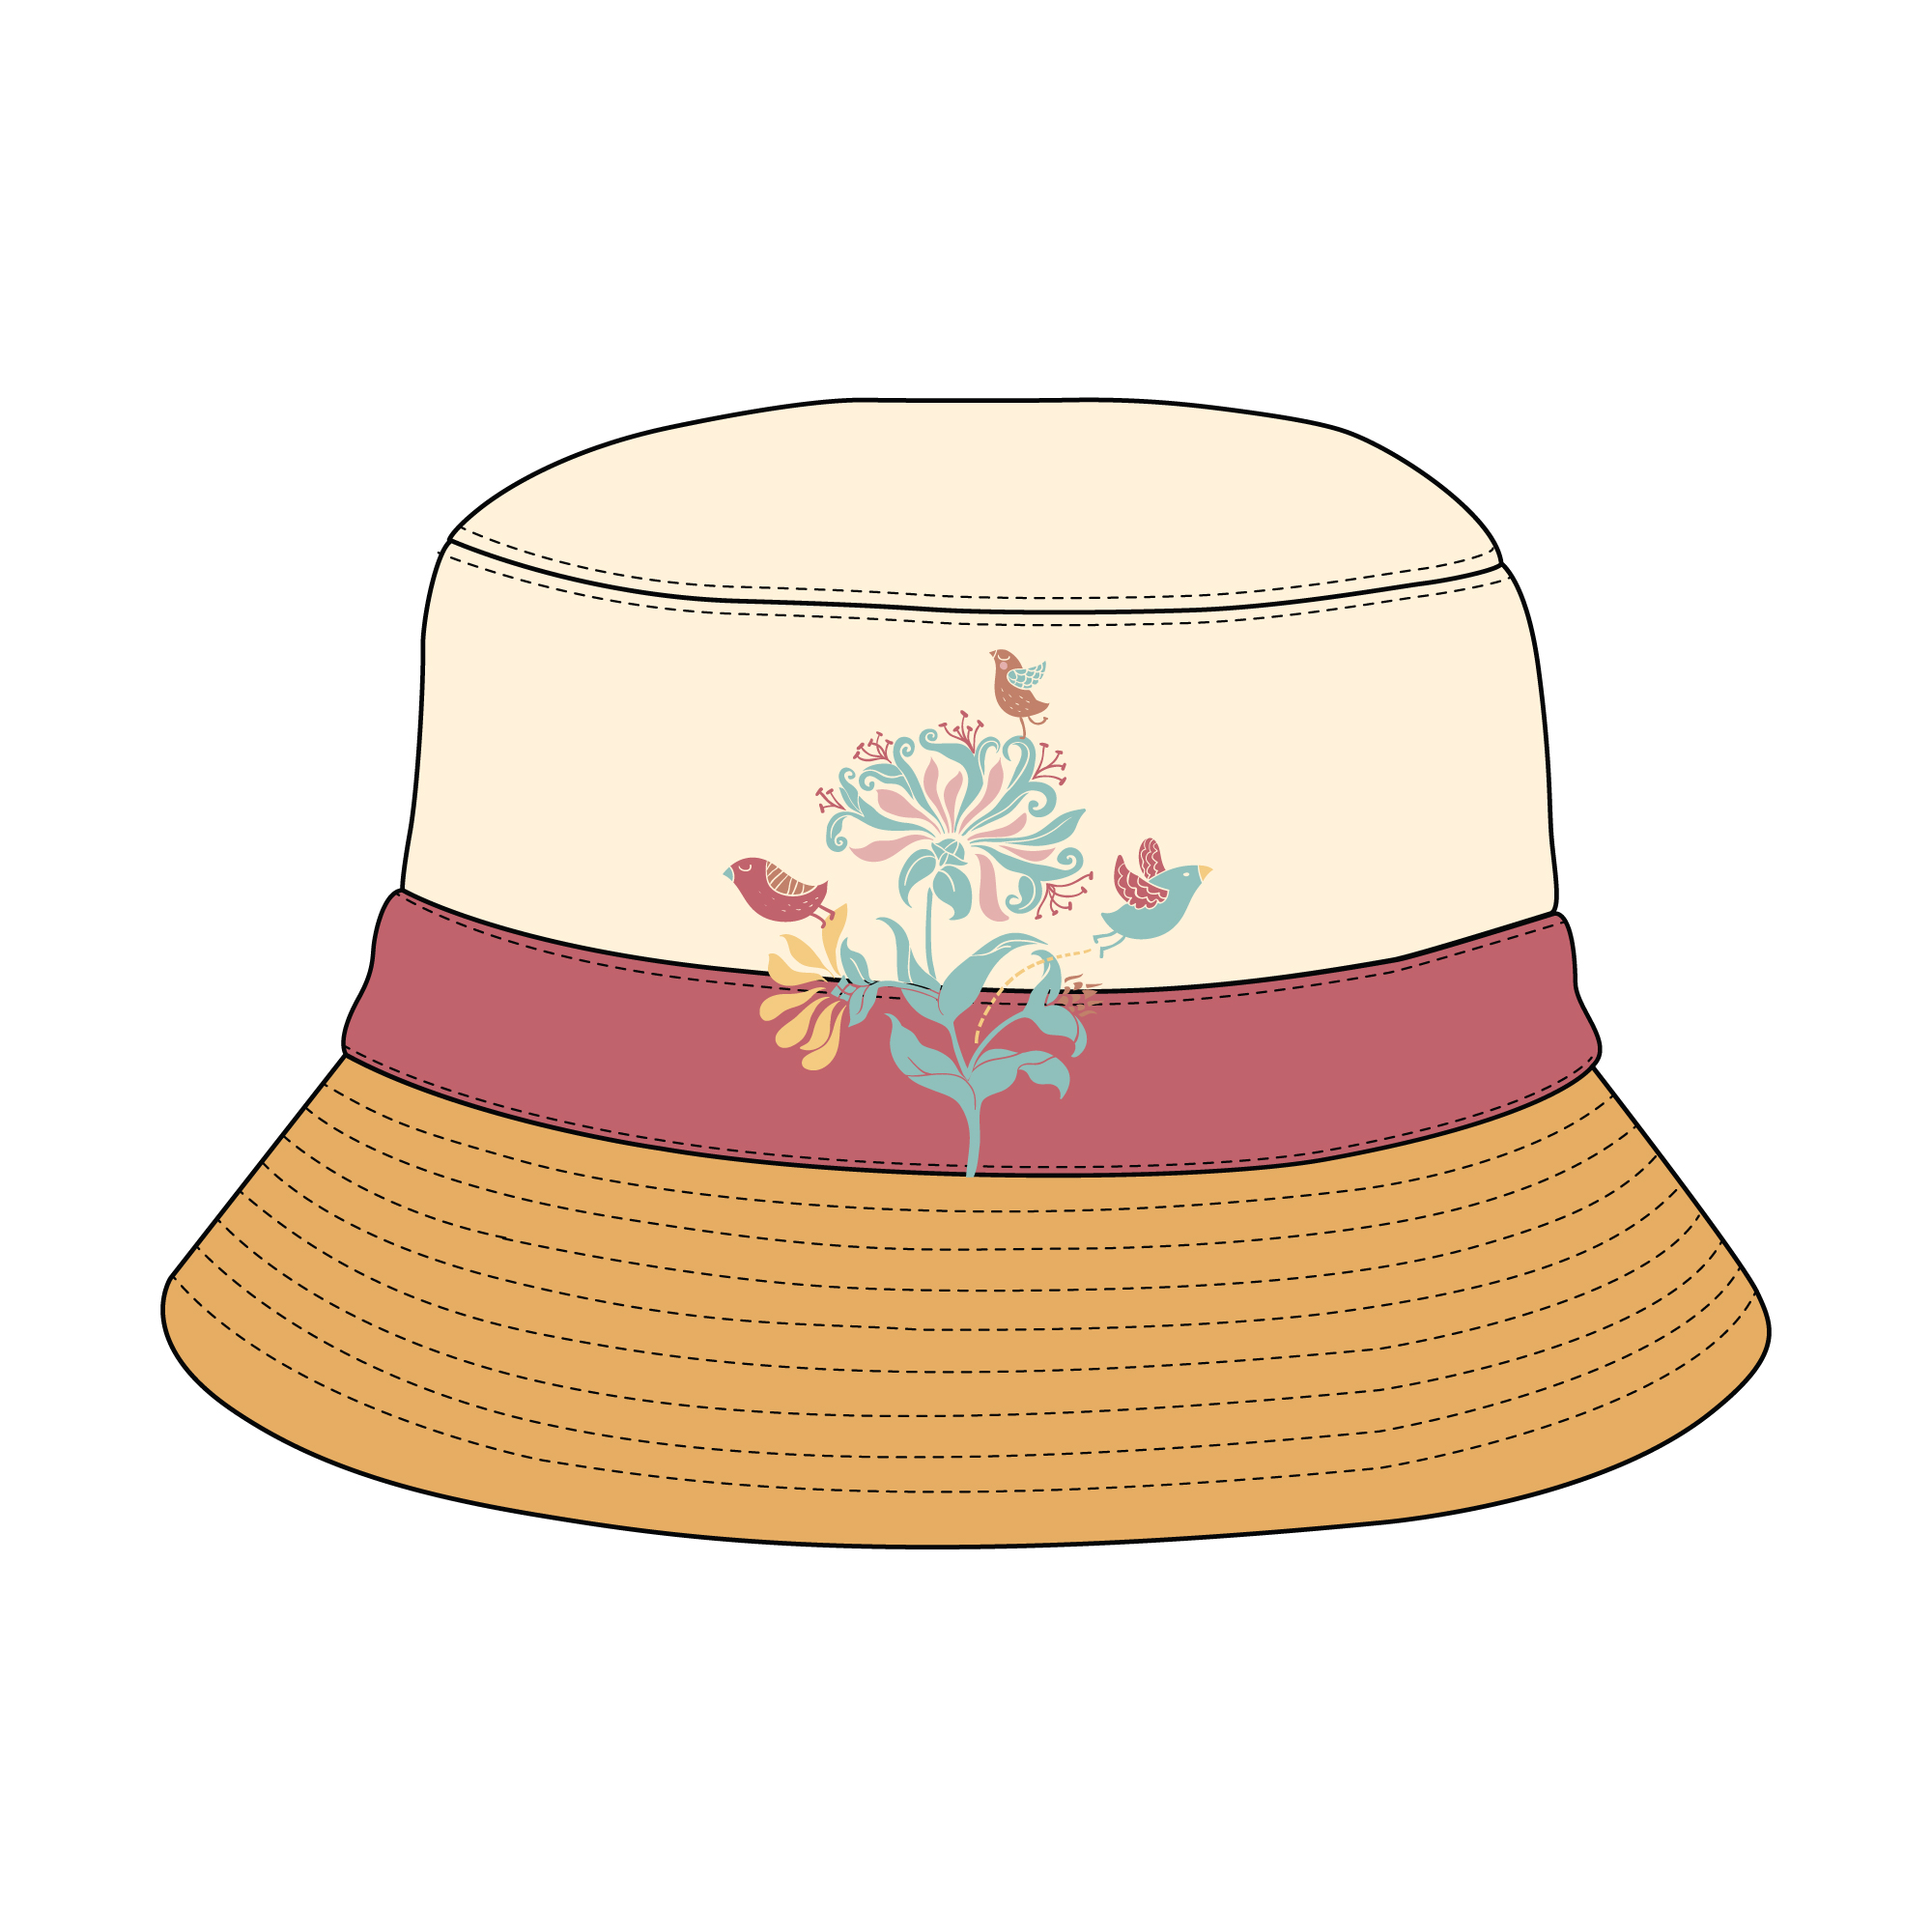 Bucket Hat Template Sample Mock Up